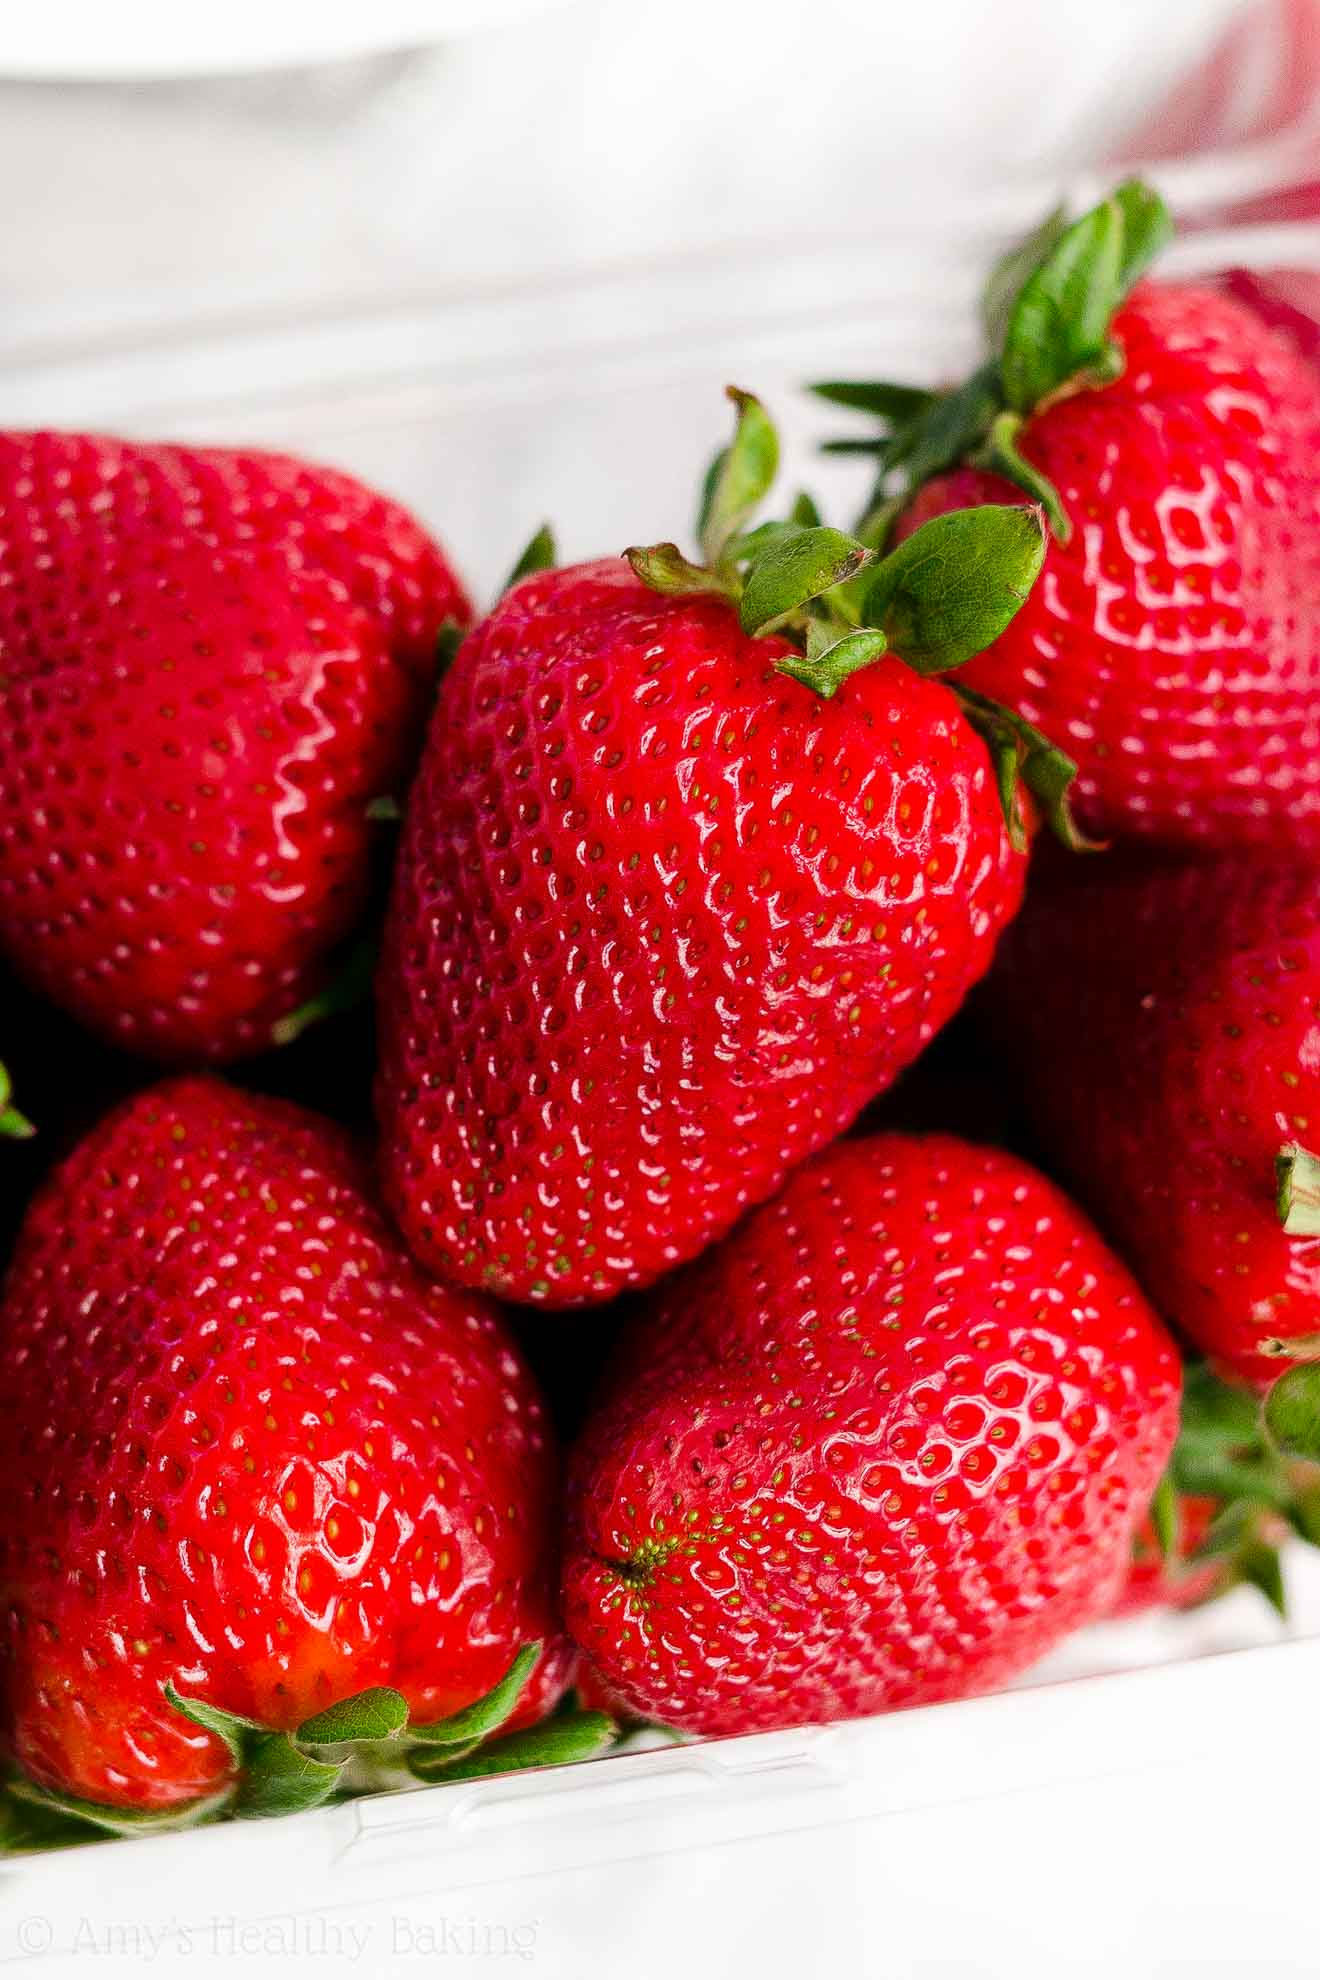 Basket of fresh, ripe, juicy, bright red strawberries